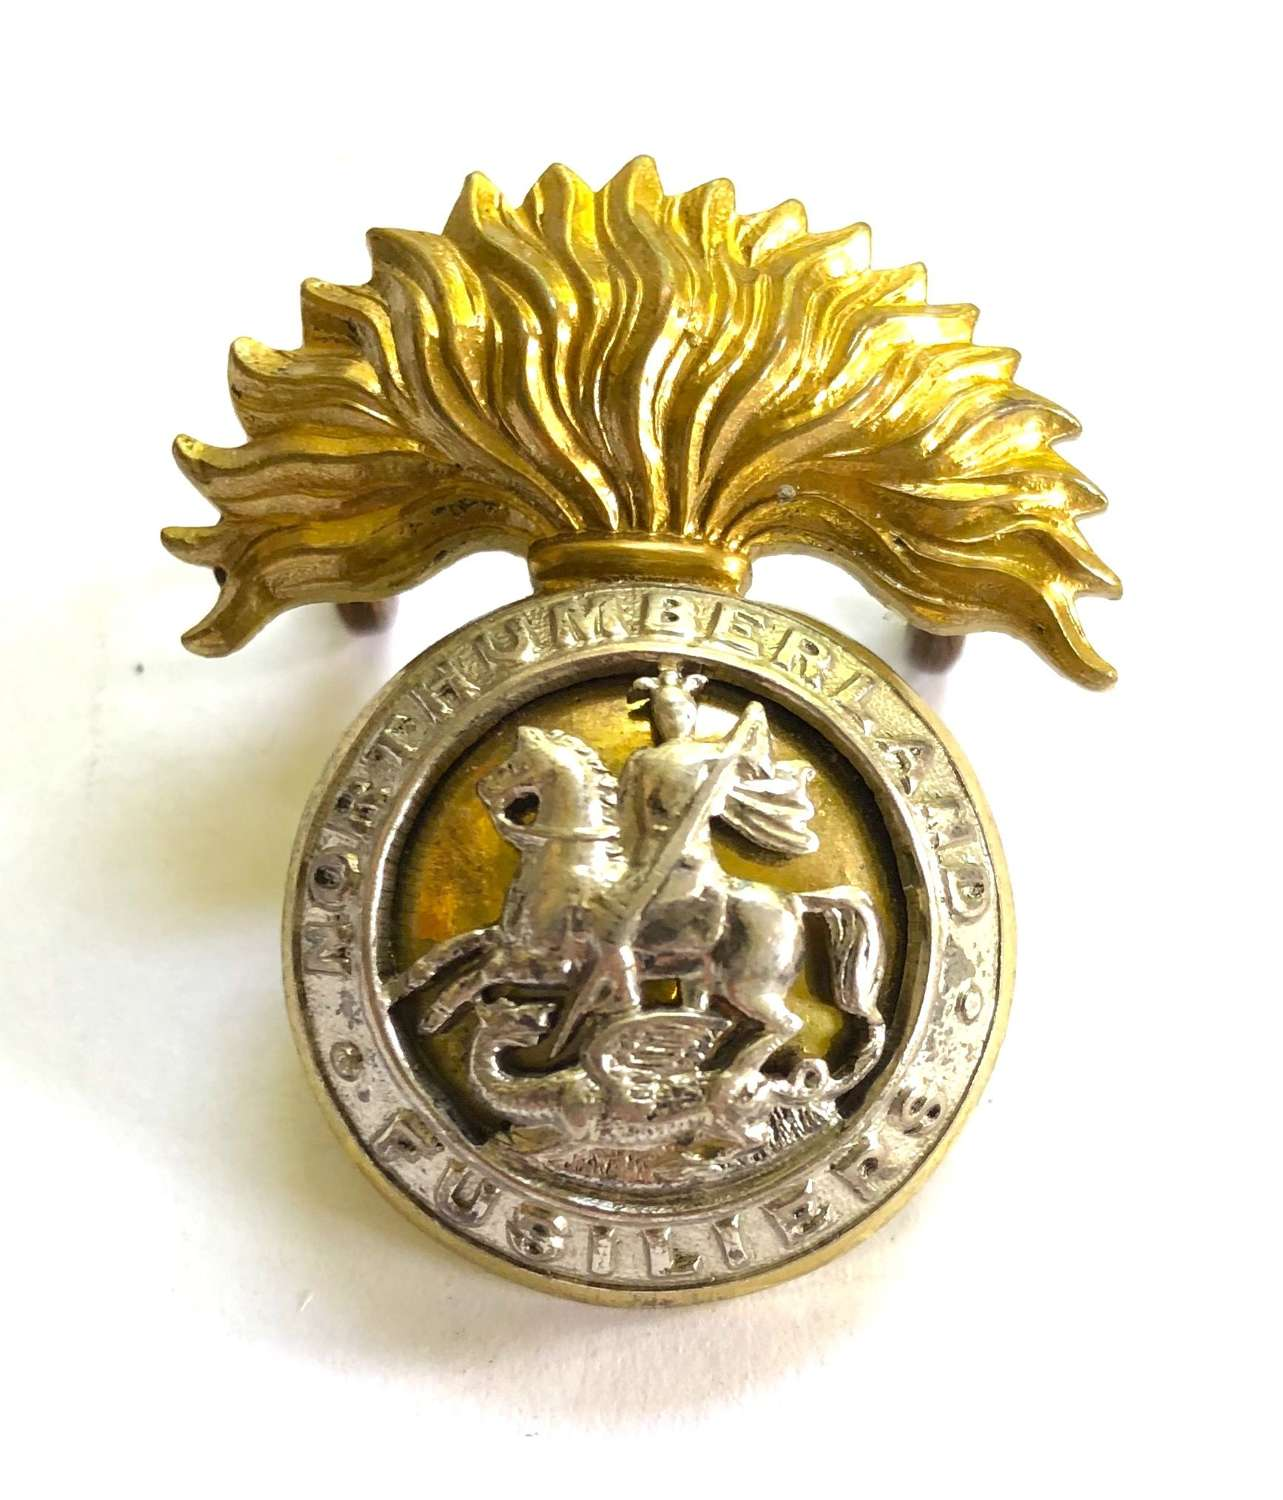 Northumberland Fusiliers pre 1935 Officer's cap badge